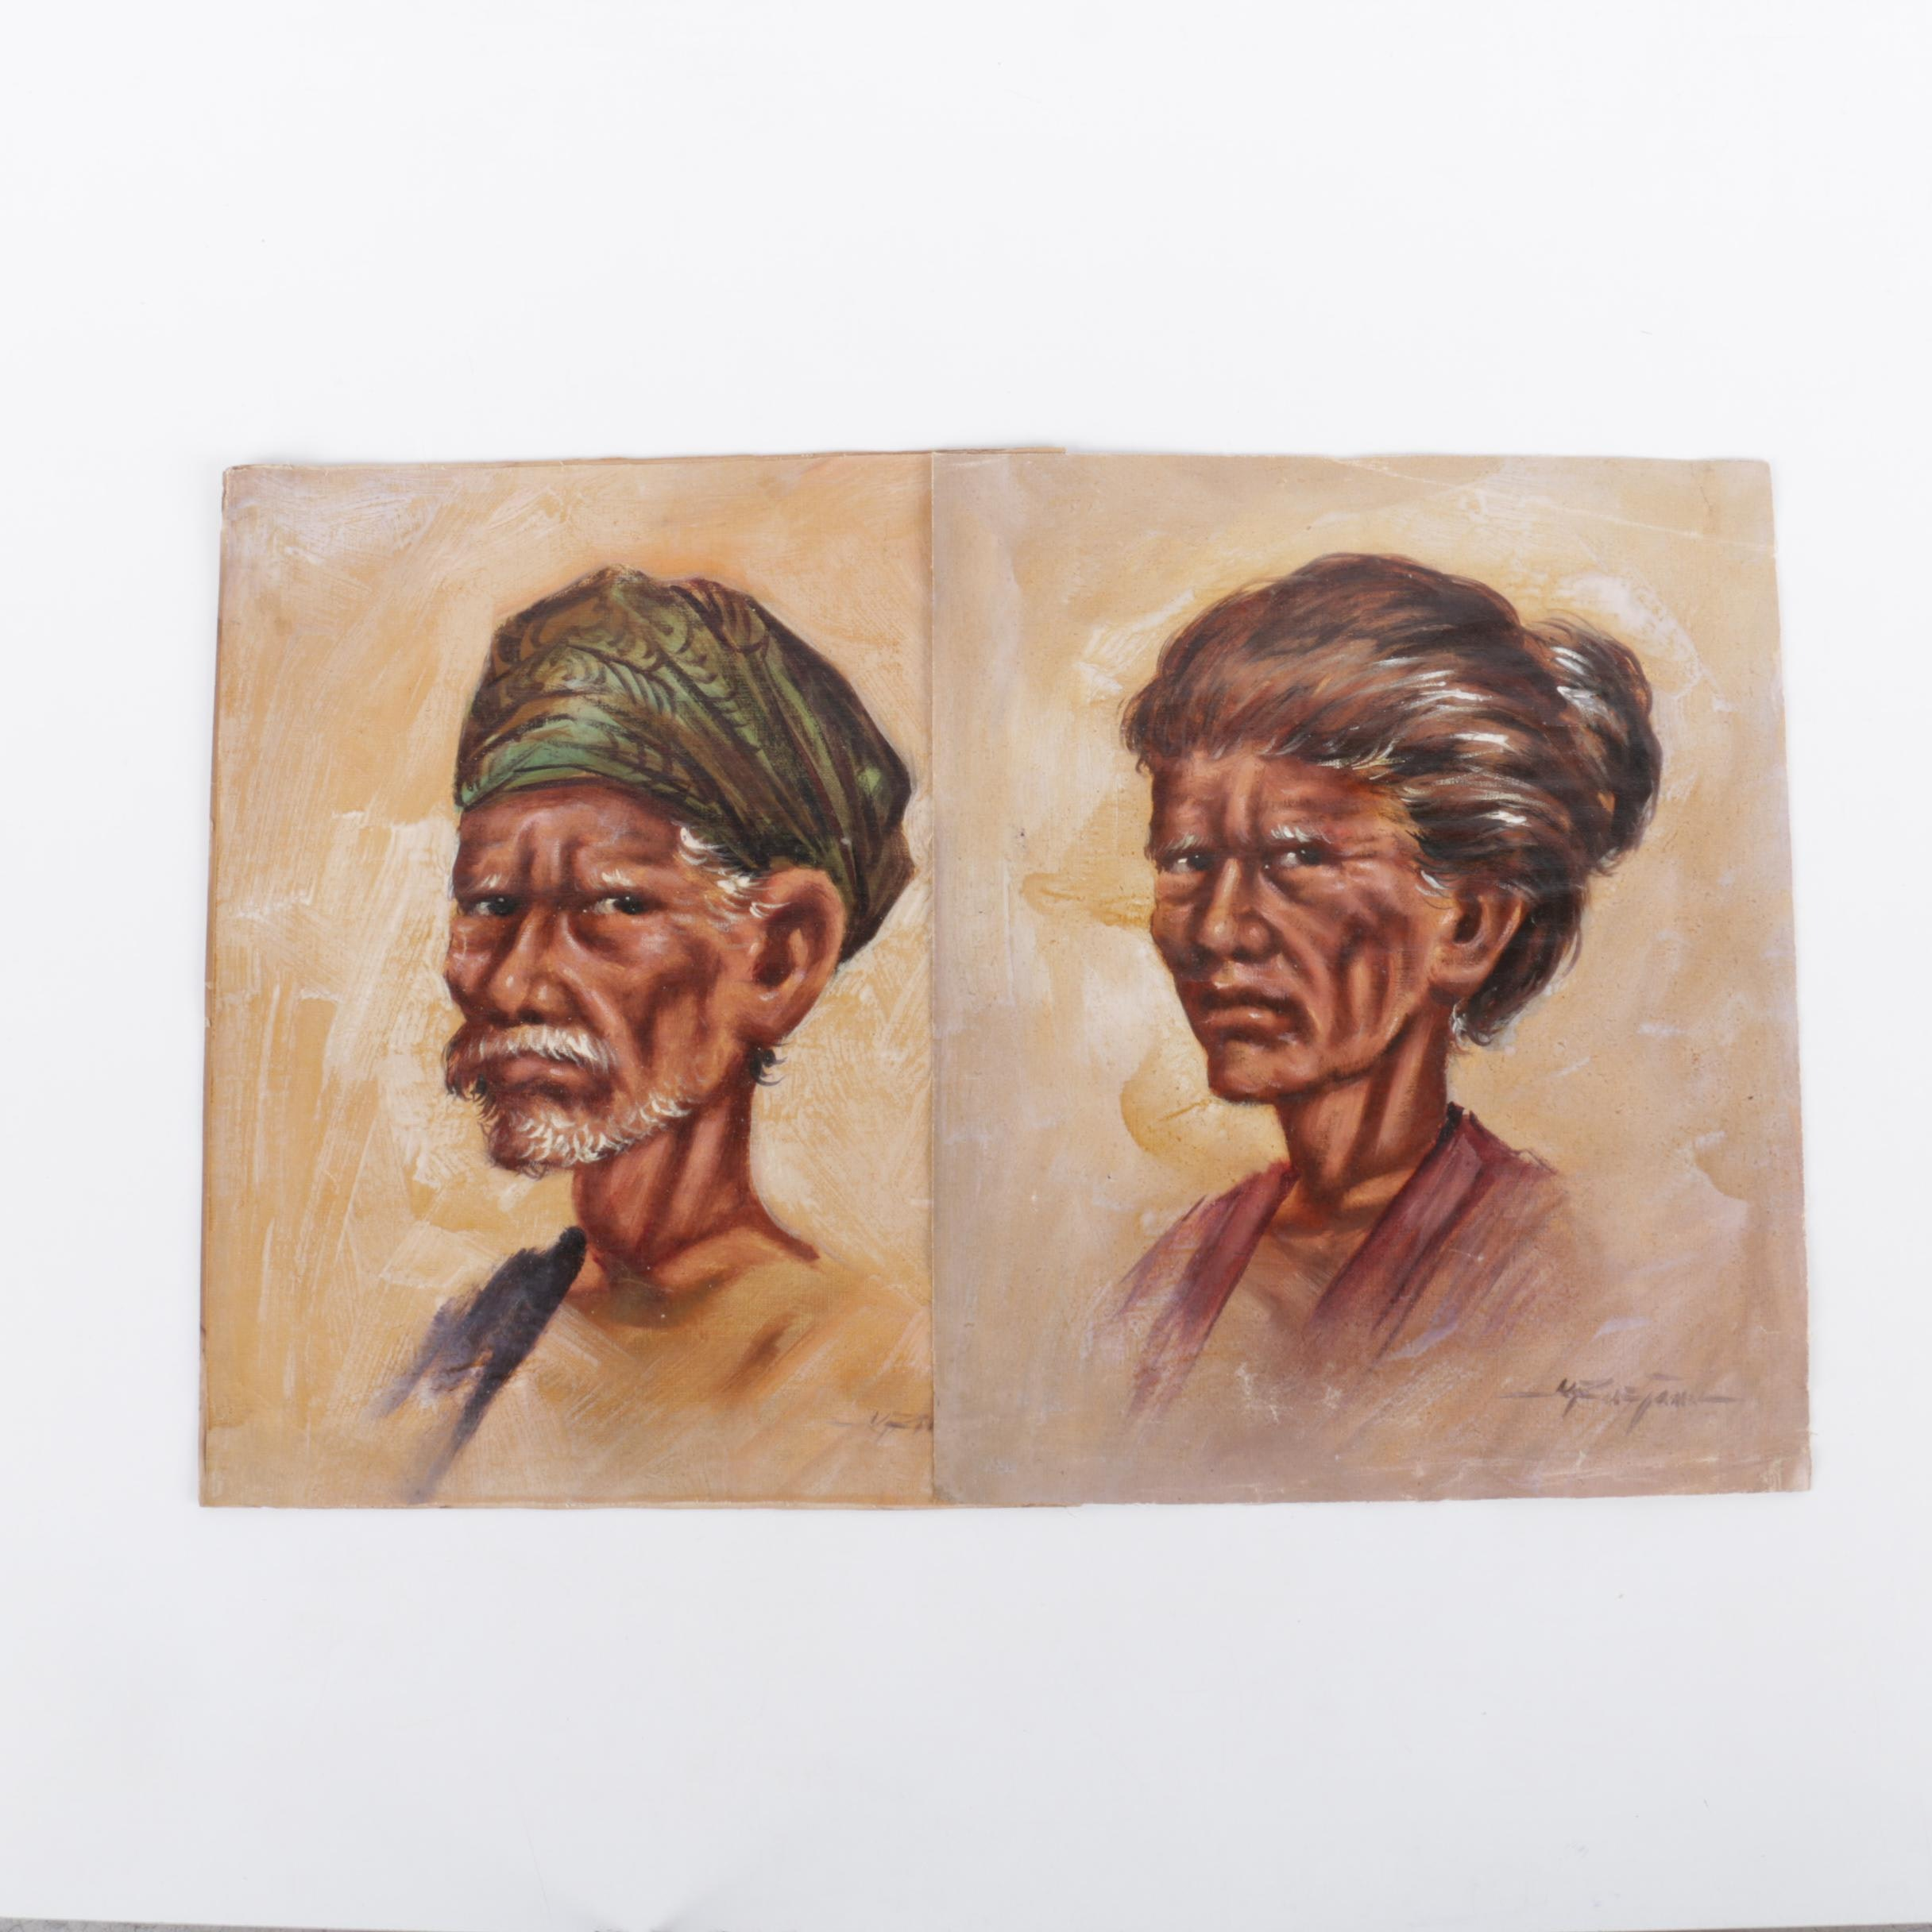 Oil Paintings on Canvas of an Older Man and Woman